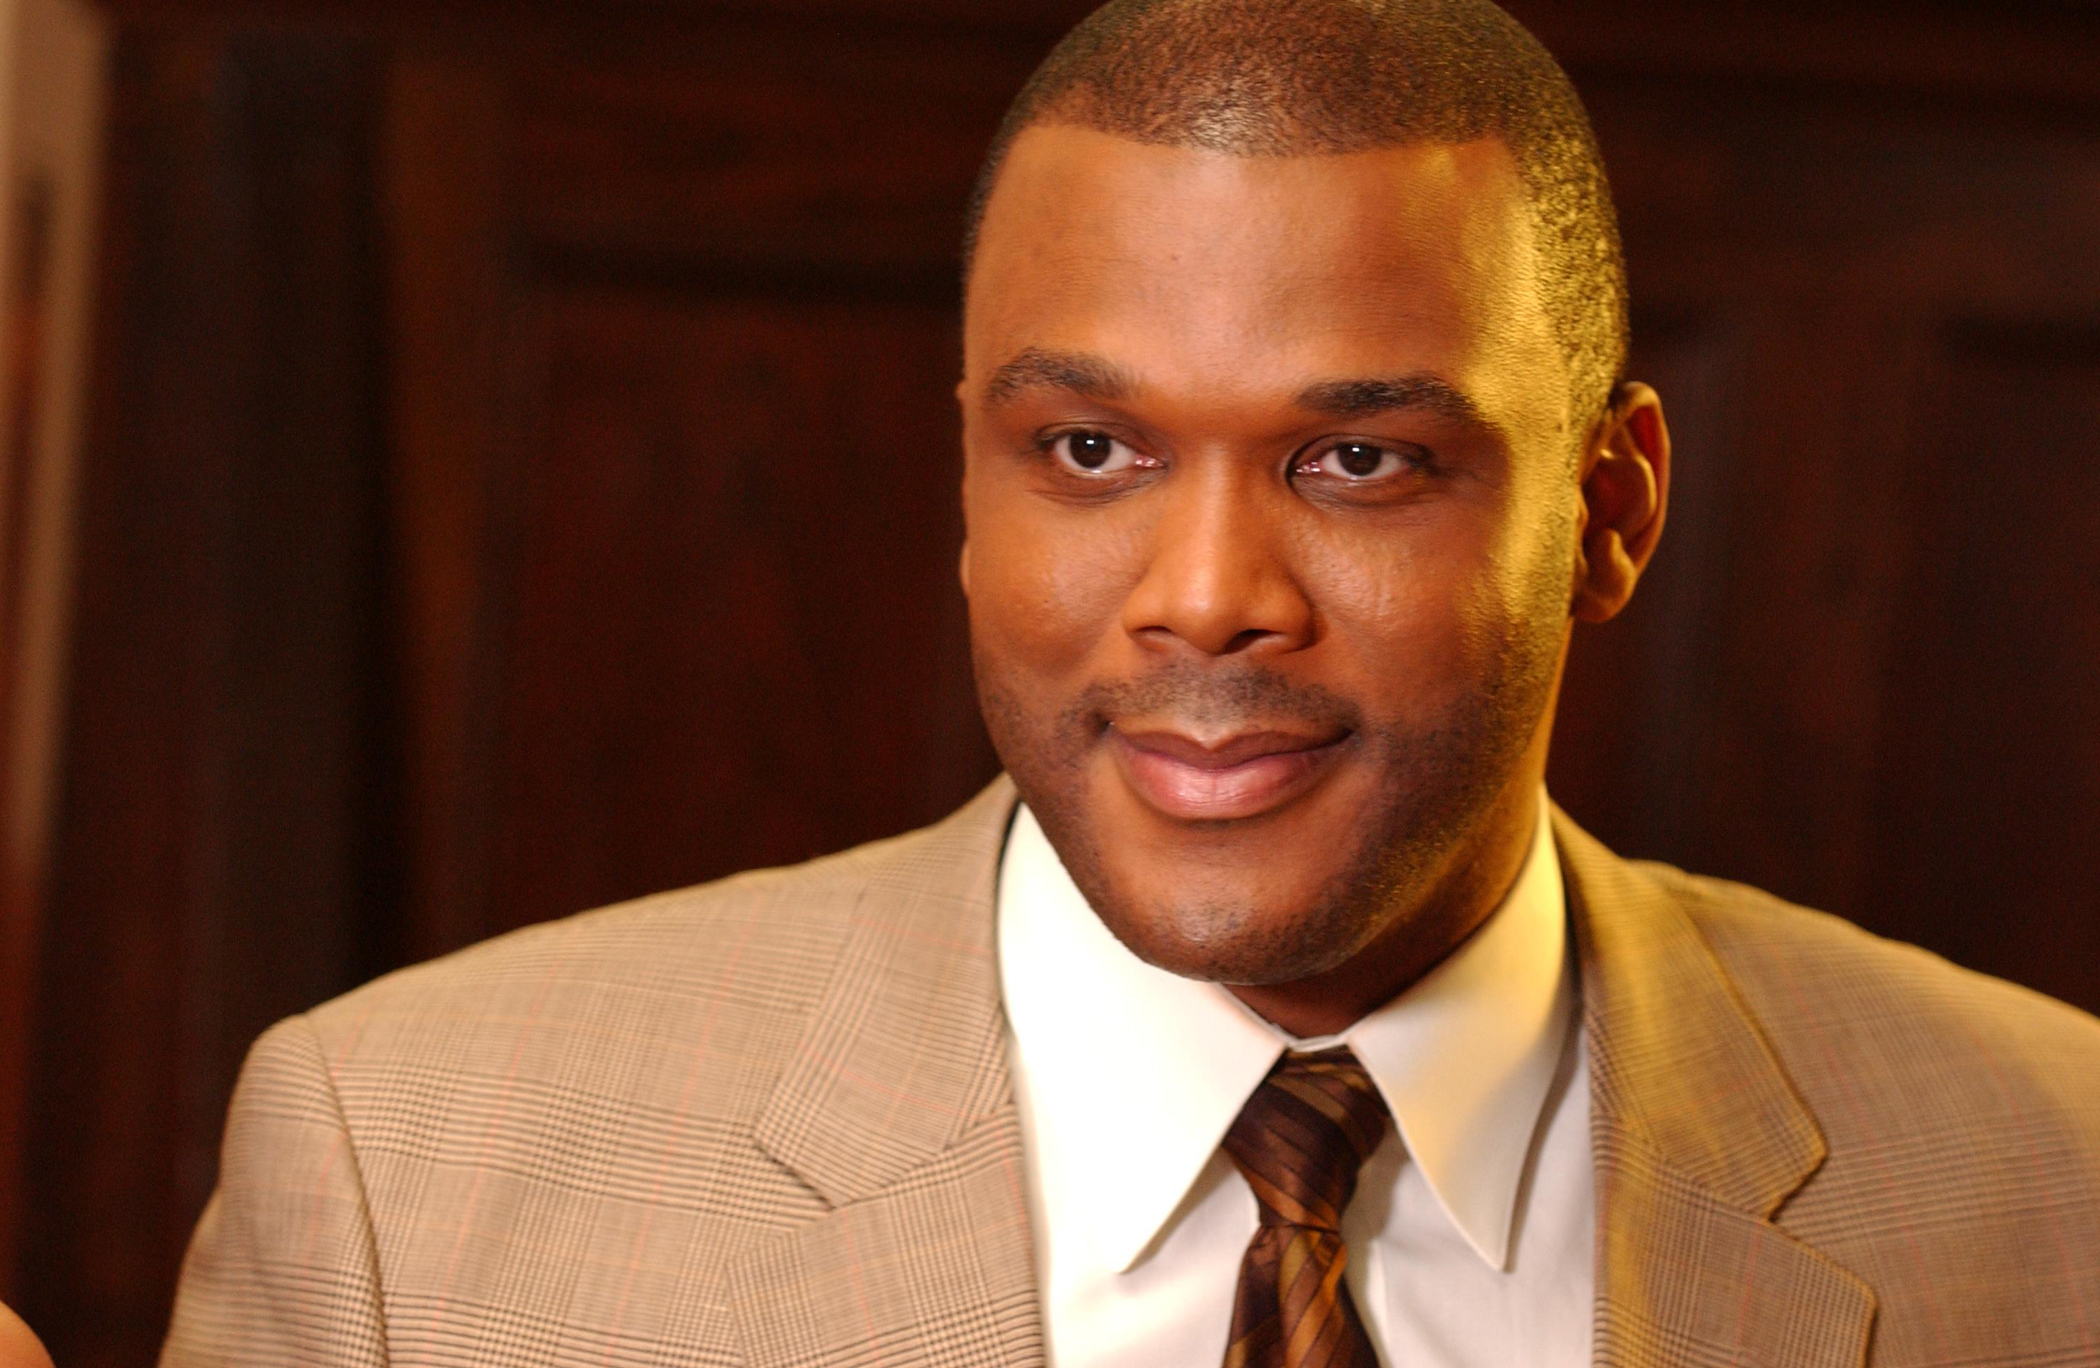 tyler perry wallpaper background 61164